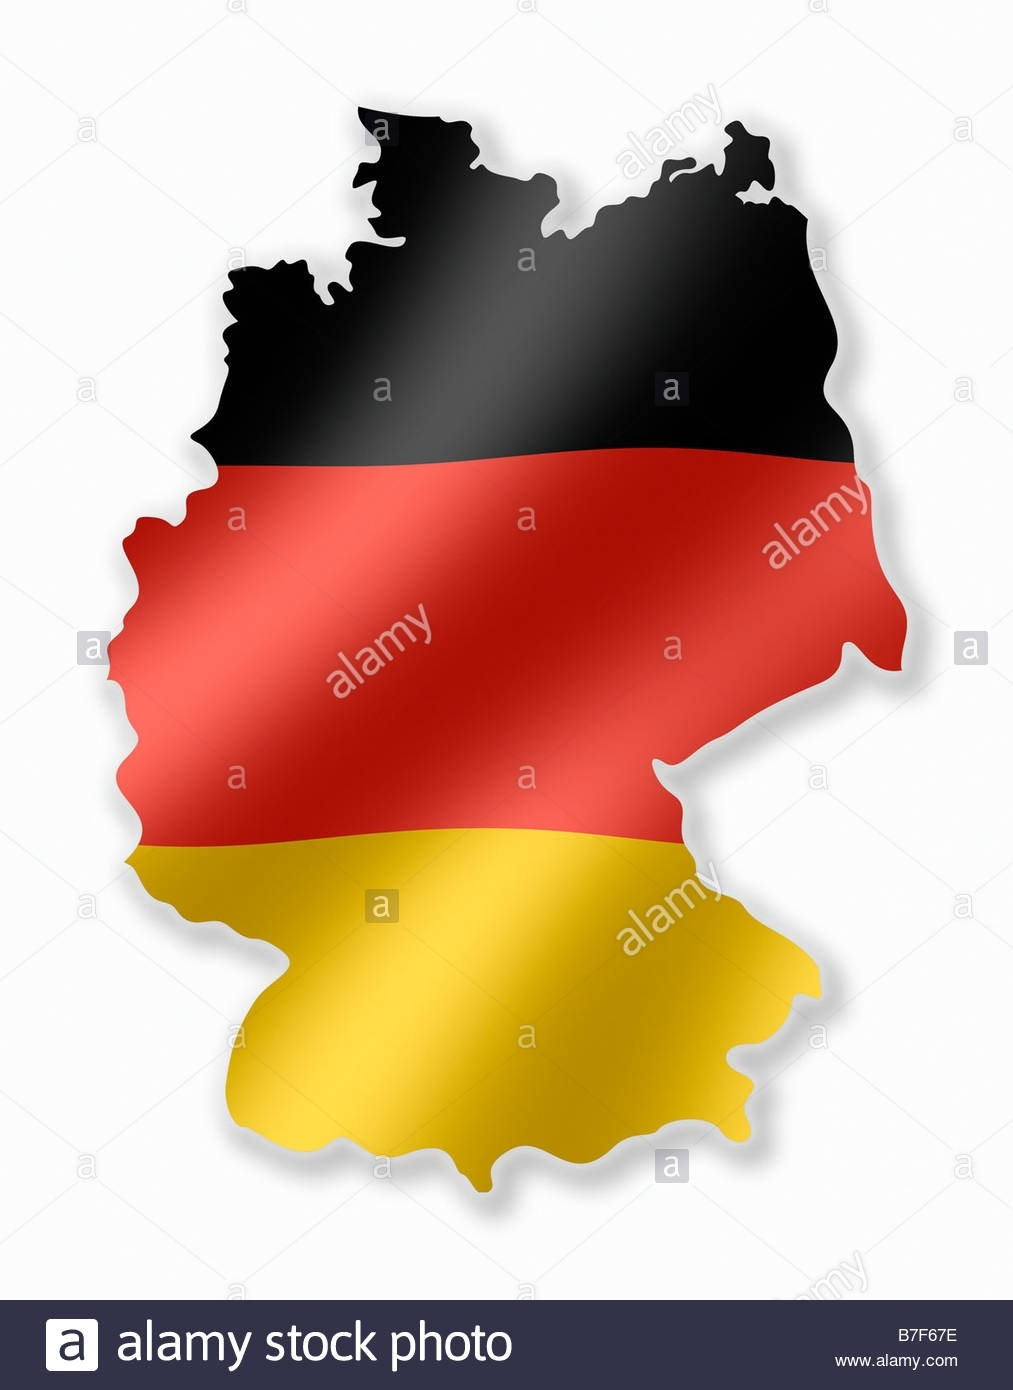 Germany German Deutschland Country Map Outline With National Flag regarding Germany Country Map Outline